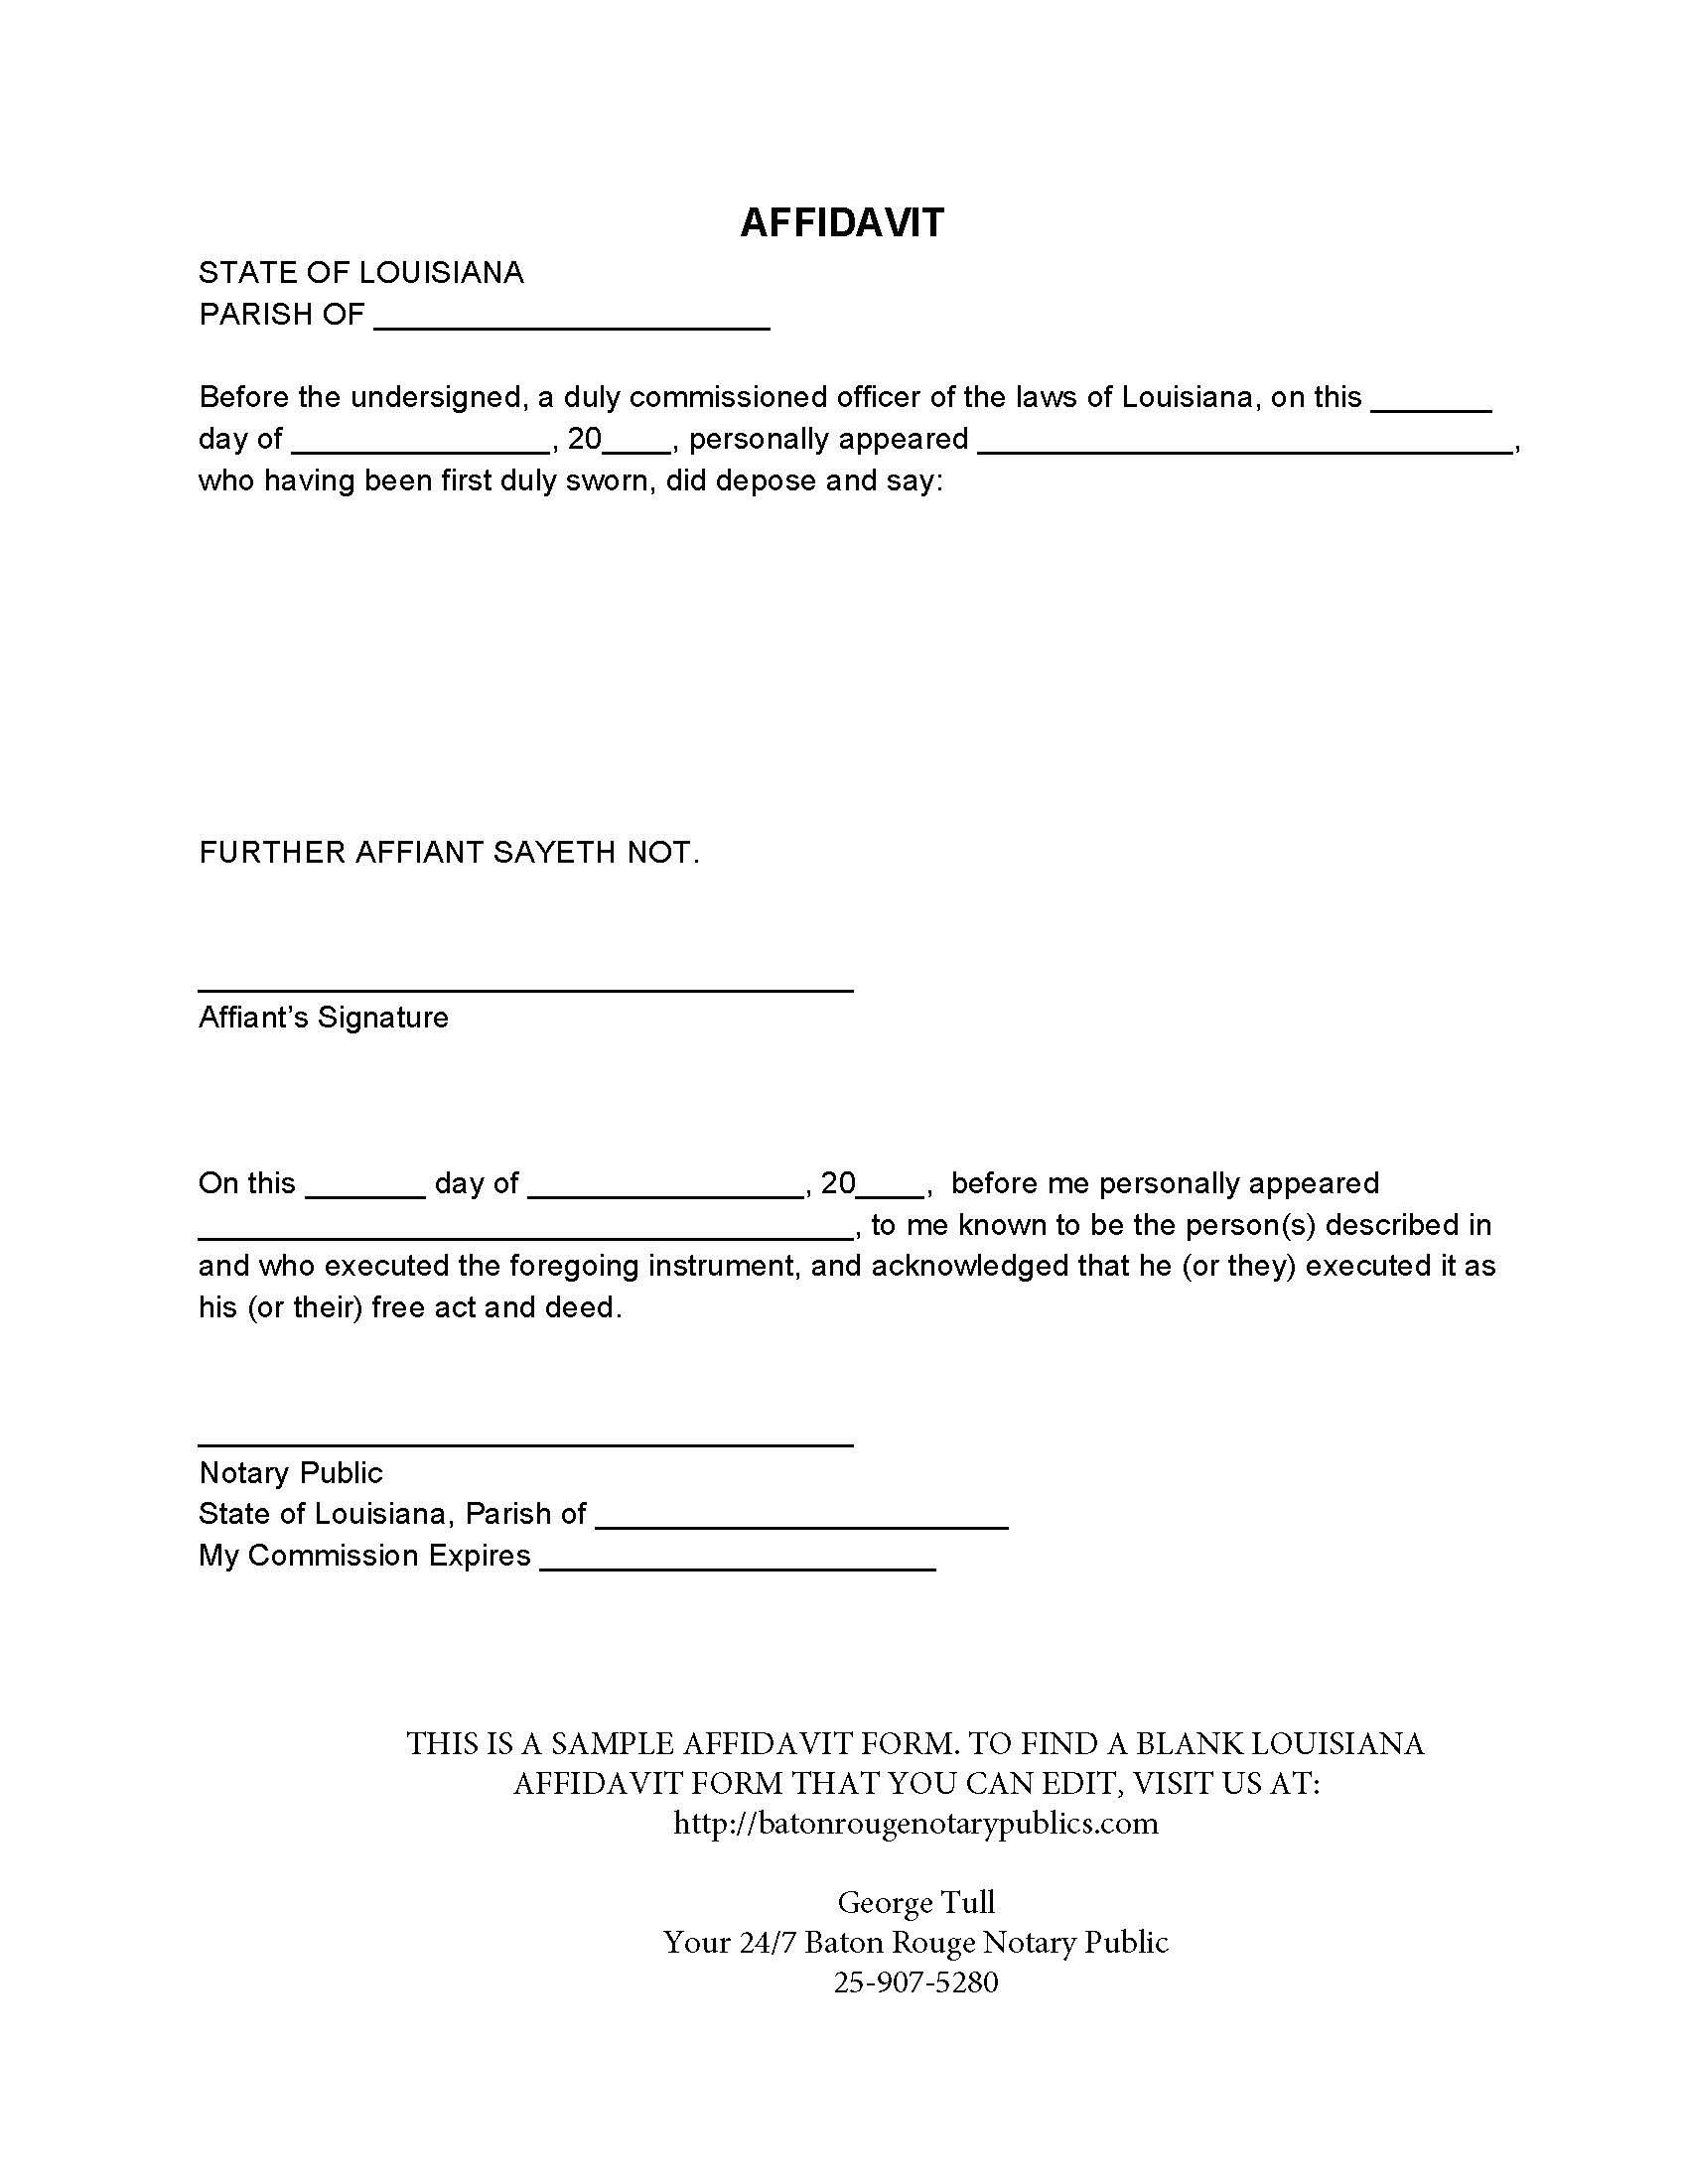 Blank Louisiana Affidavit – Free Affidavit Form Download